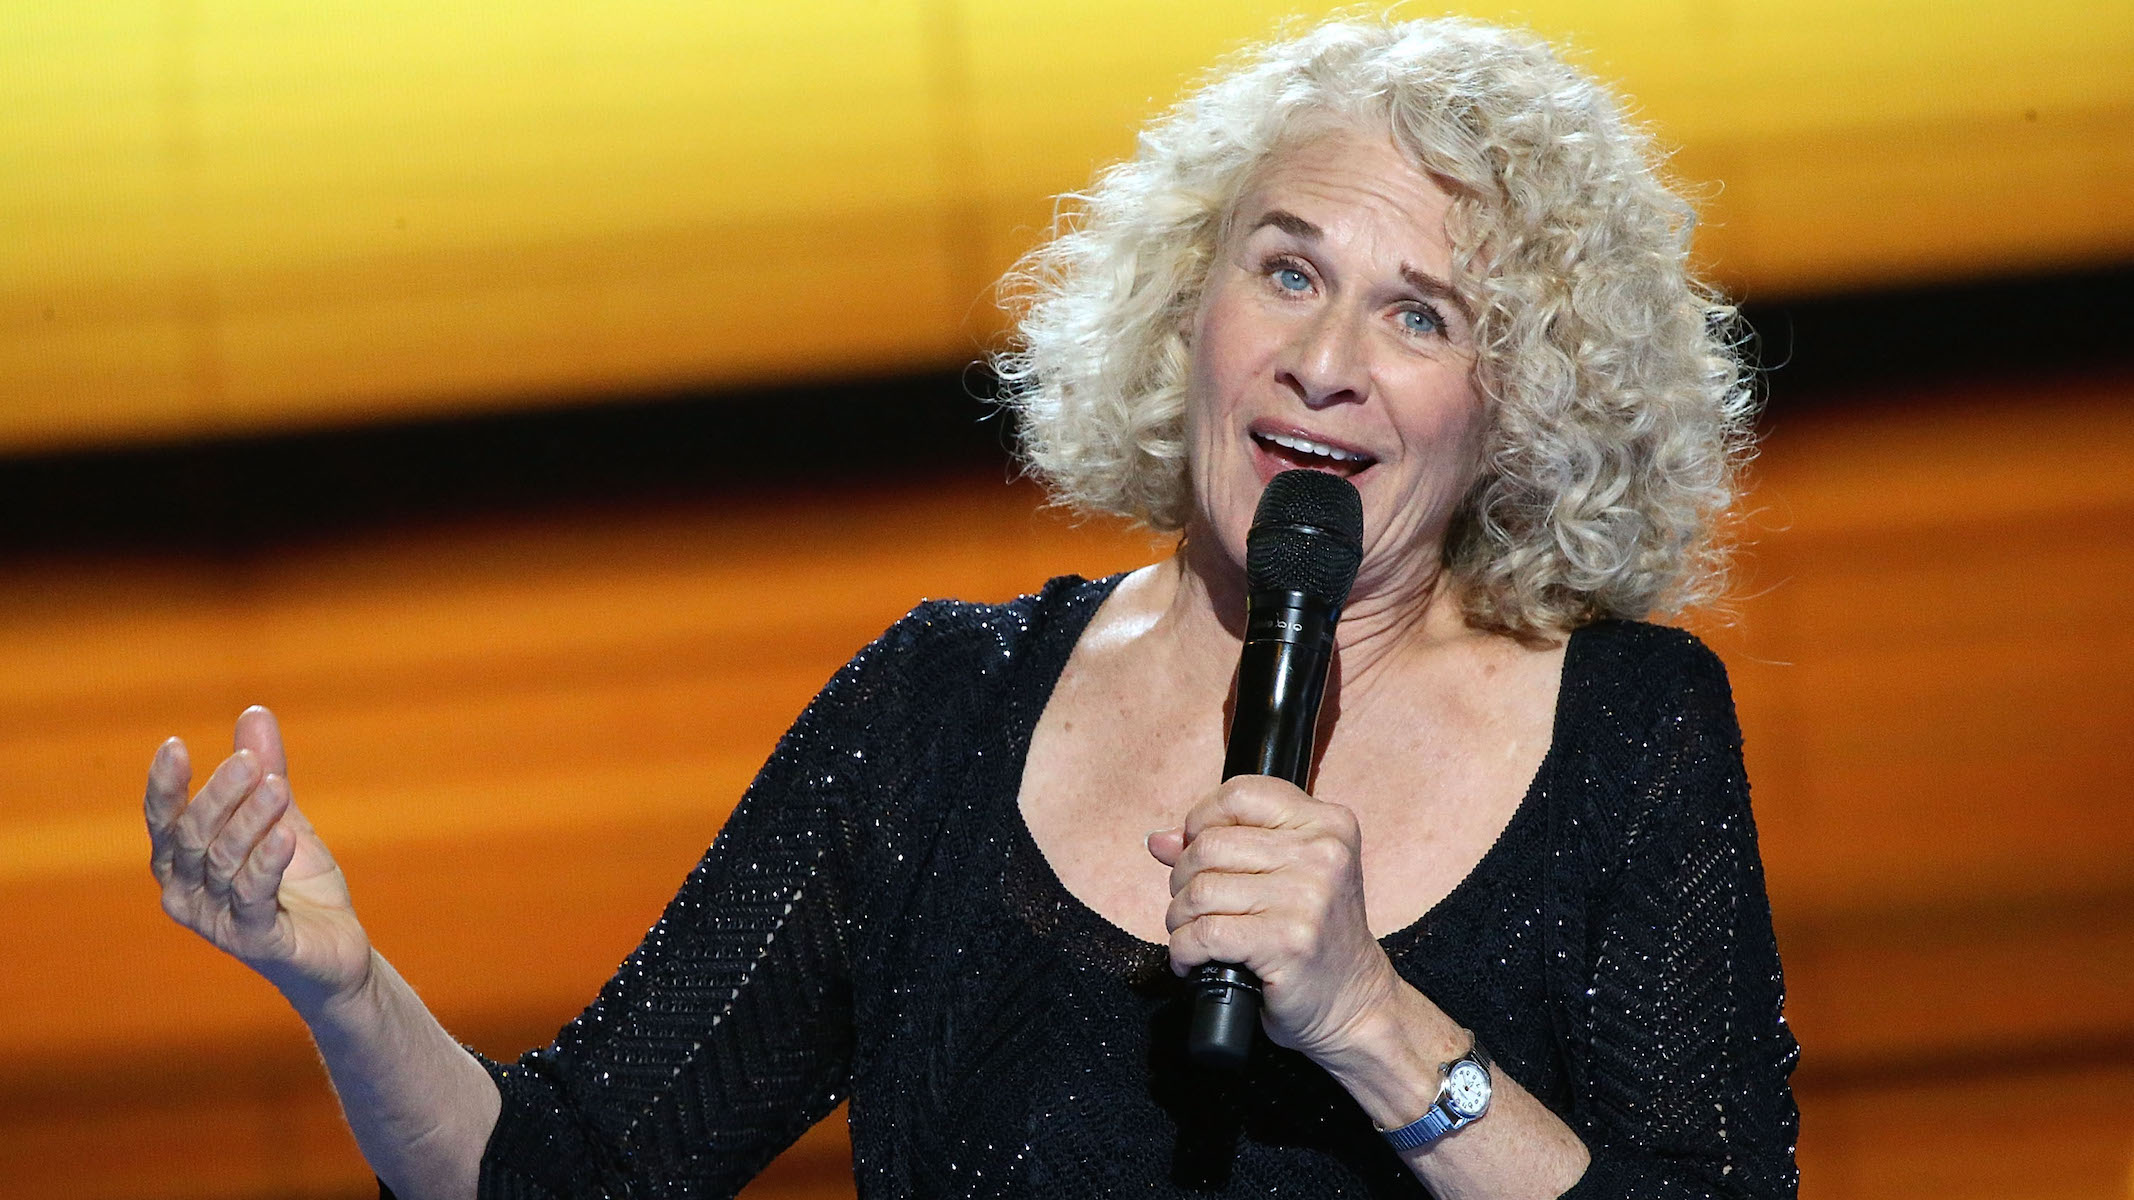 Hear Carole King Command a New York Stage in 1993